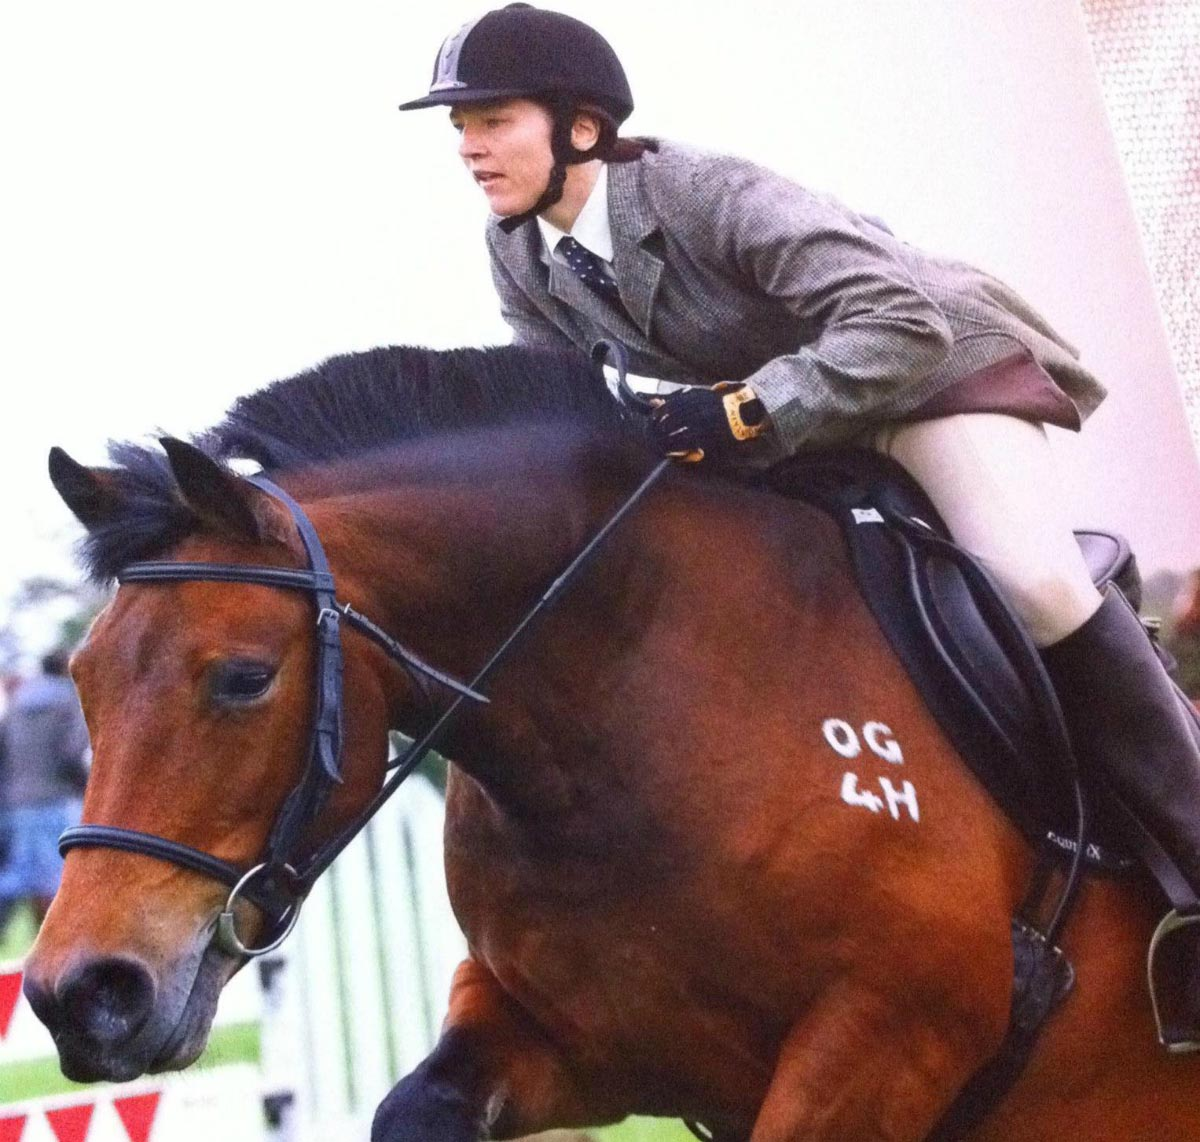 Tracey riding high after spine surgery success